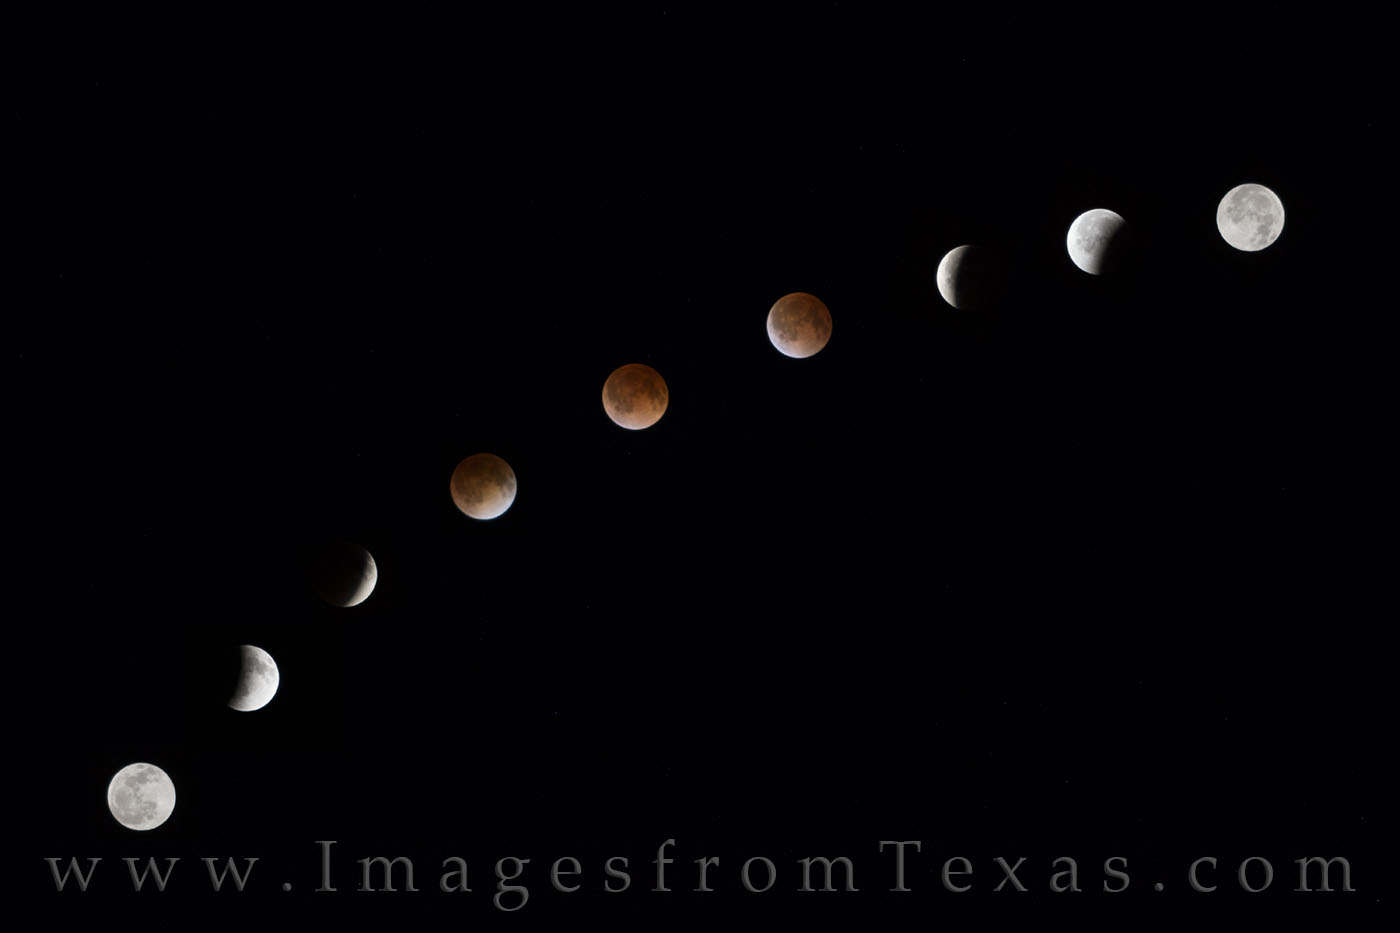 blood moon, blood moon images, blood moon austin, images from austin, images of austin, texas images, texas pictures, texas photos, blood moon pictures, blood moon phases, blood moon photos, blood moo, photo